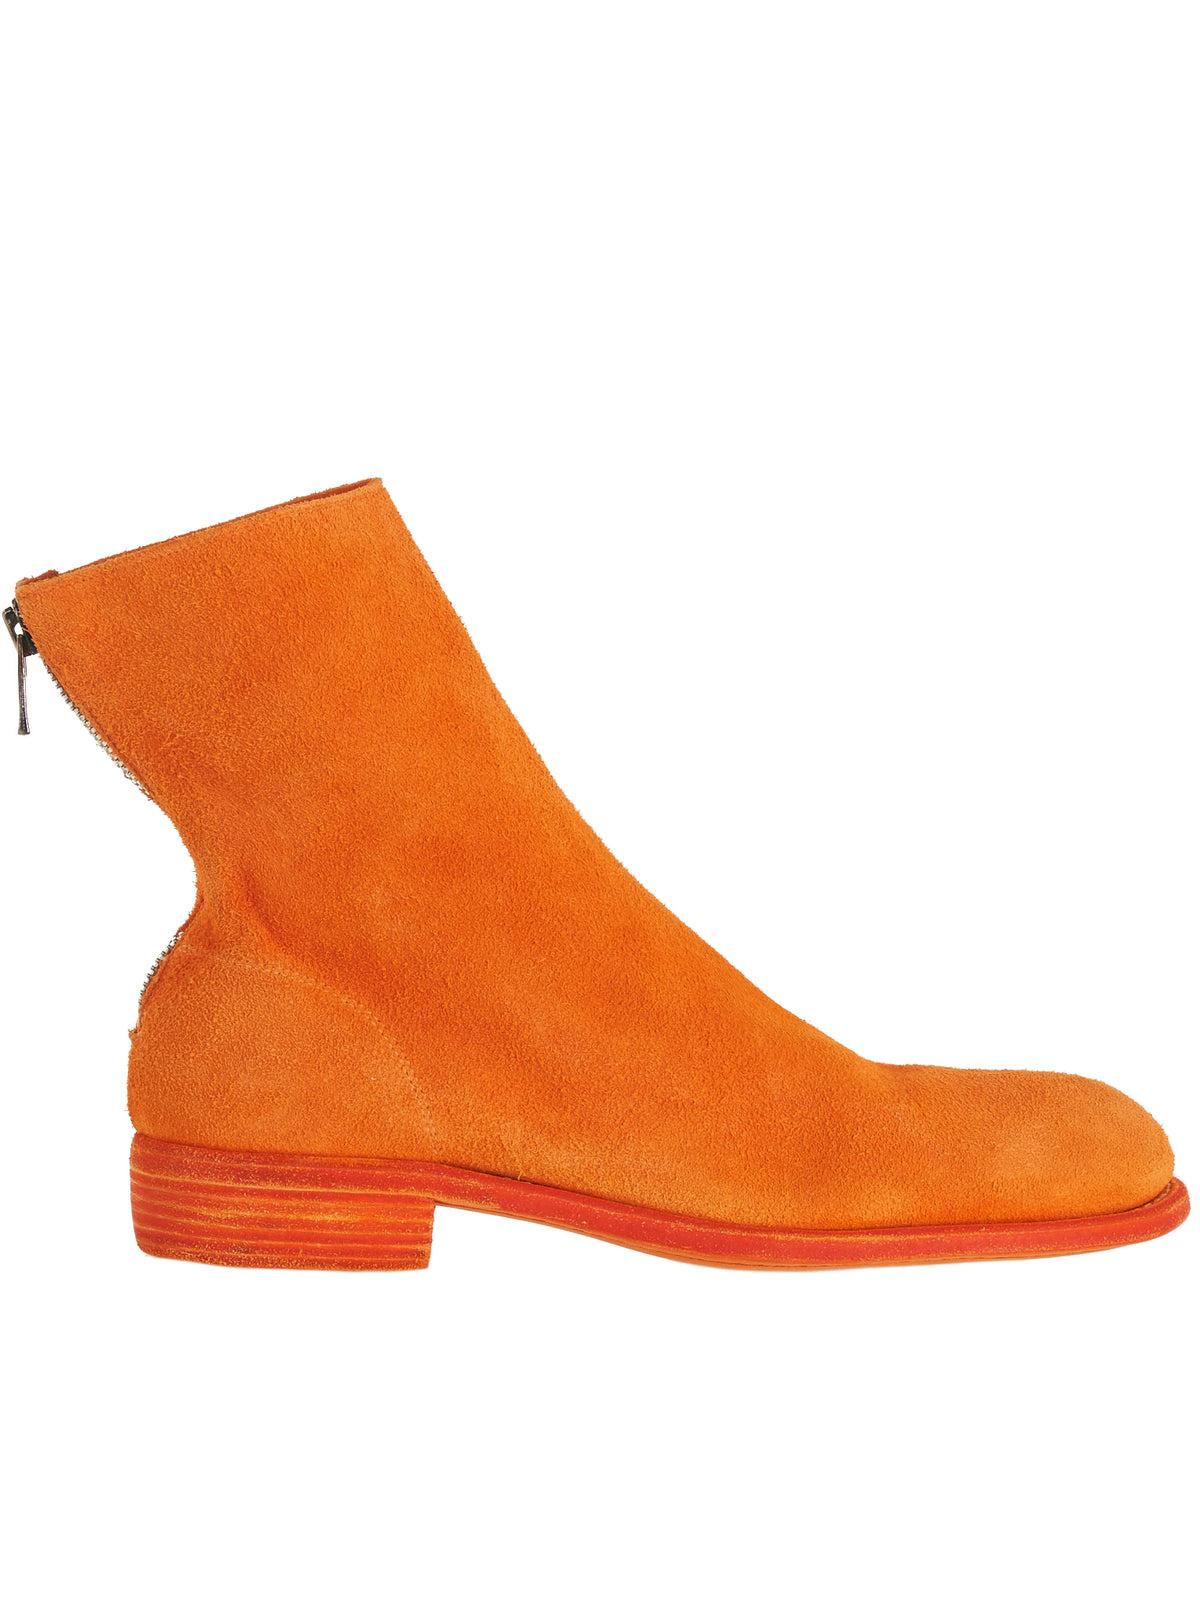 986 Buffalo Leather Boots (986-BUFFALO-NEON-ORANGE)